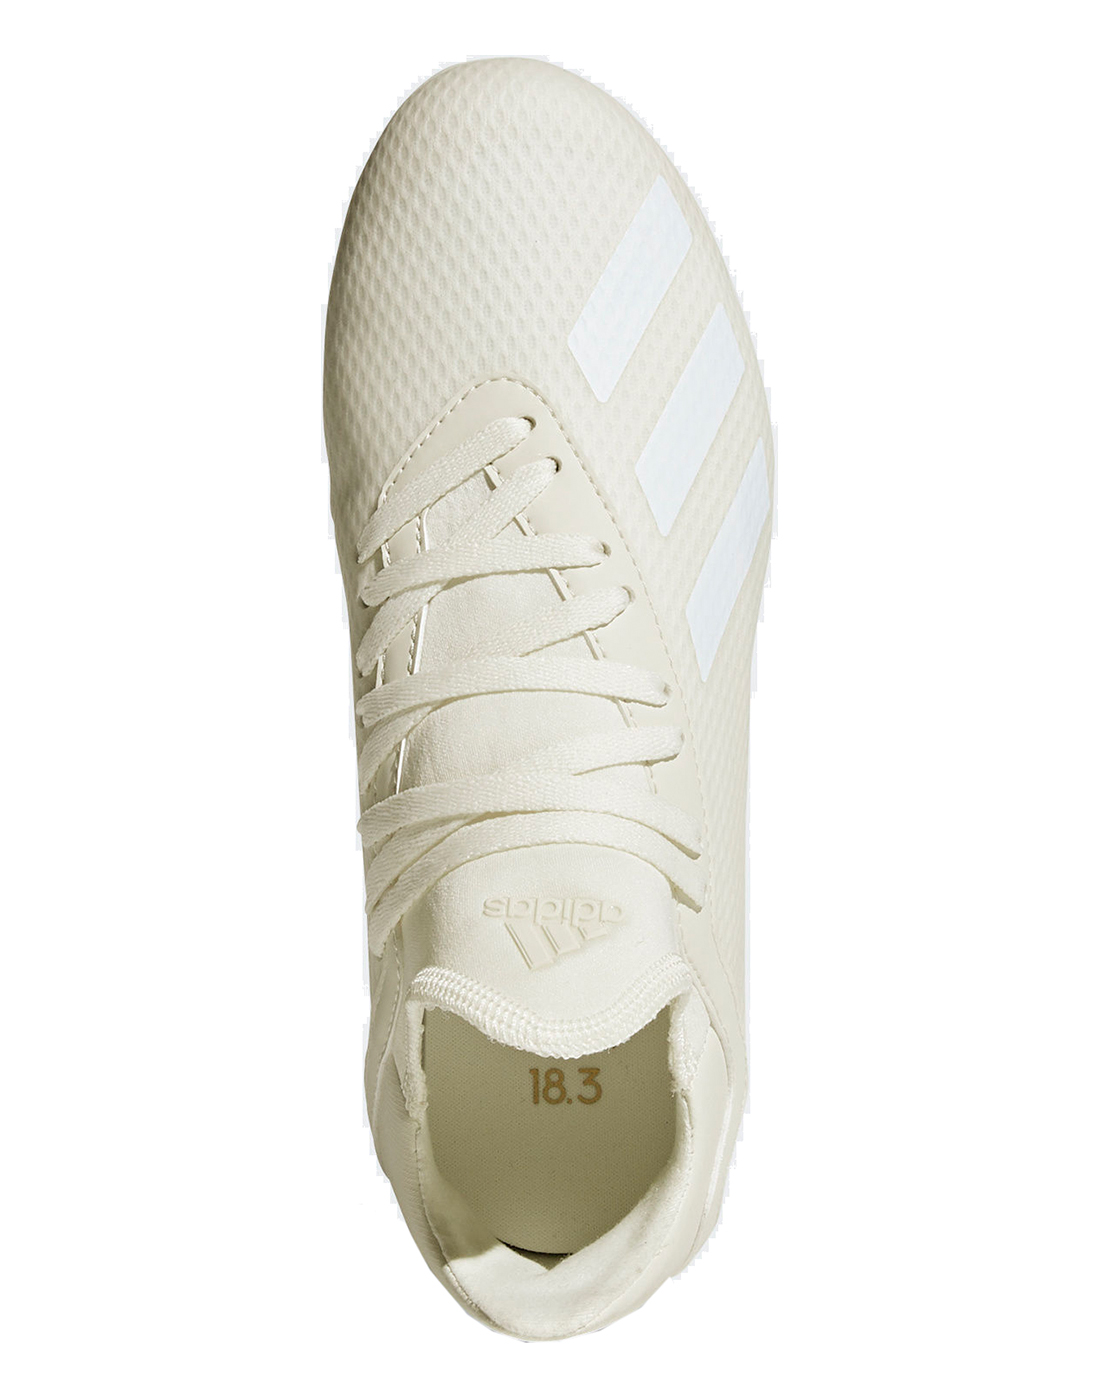 96502199ccc Kids White adidas X 18.3   Spectral Mode   Life Style Sports